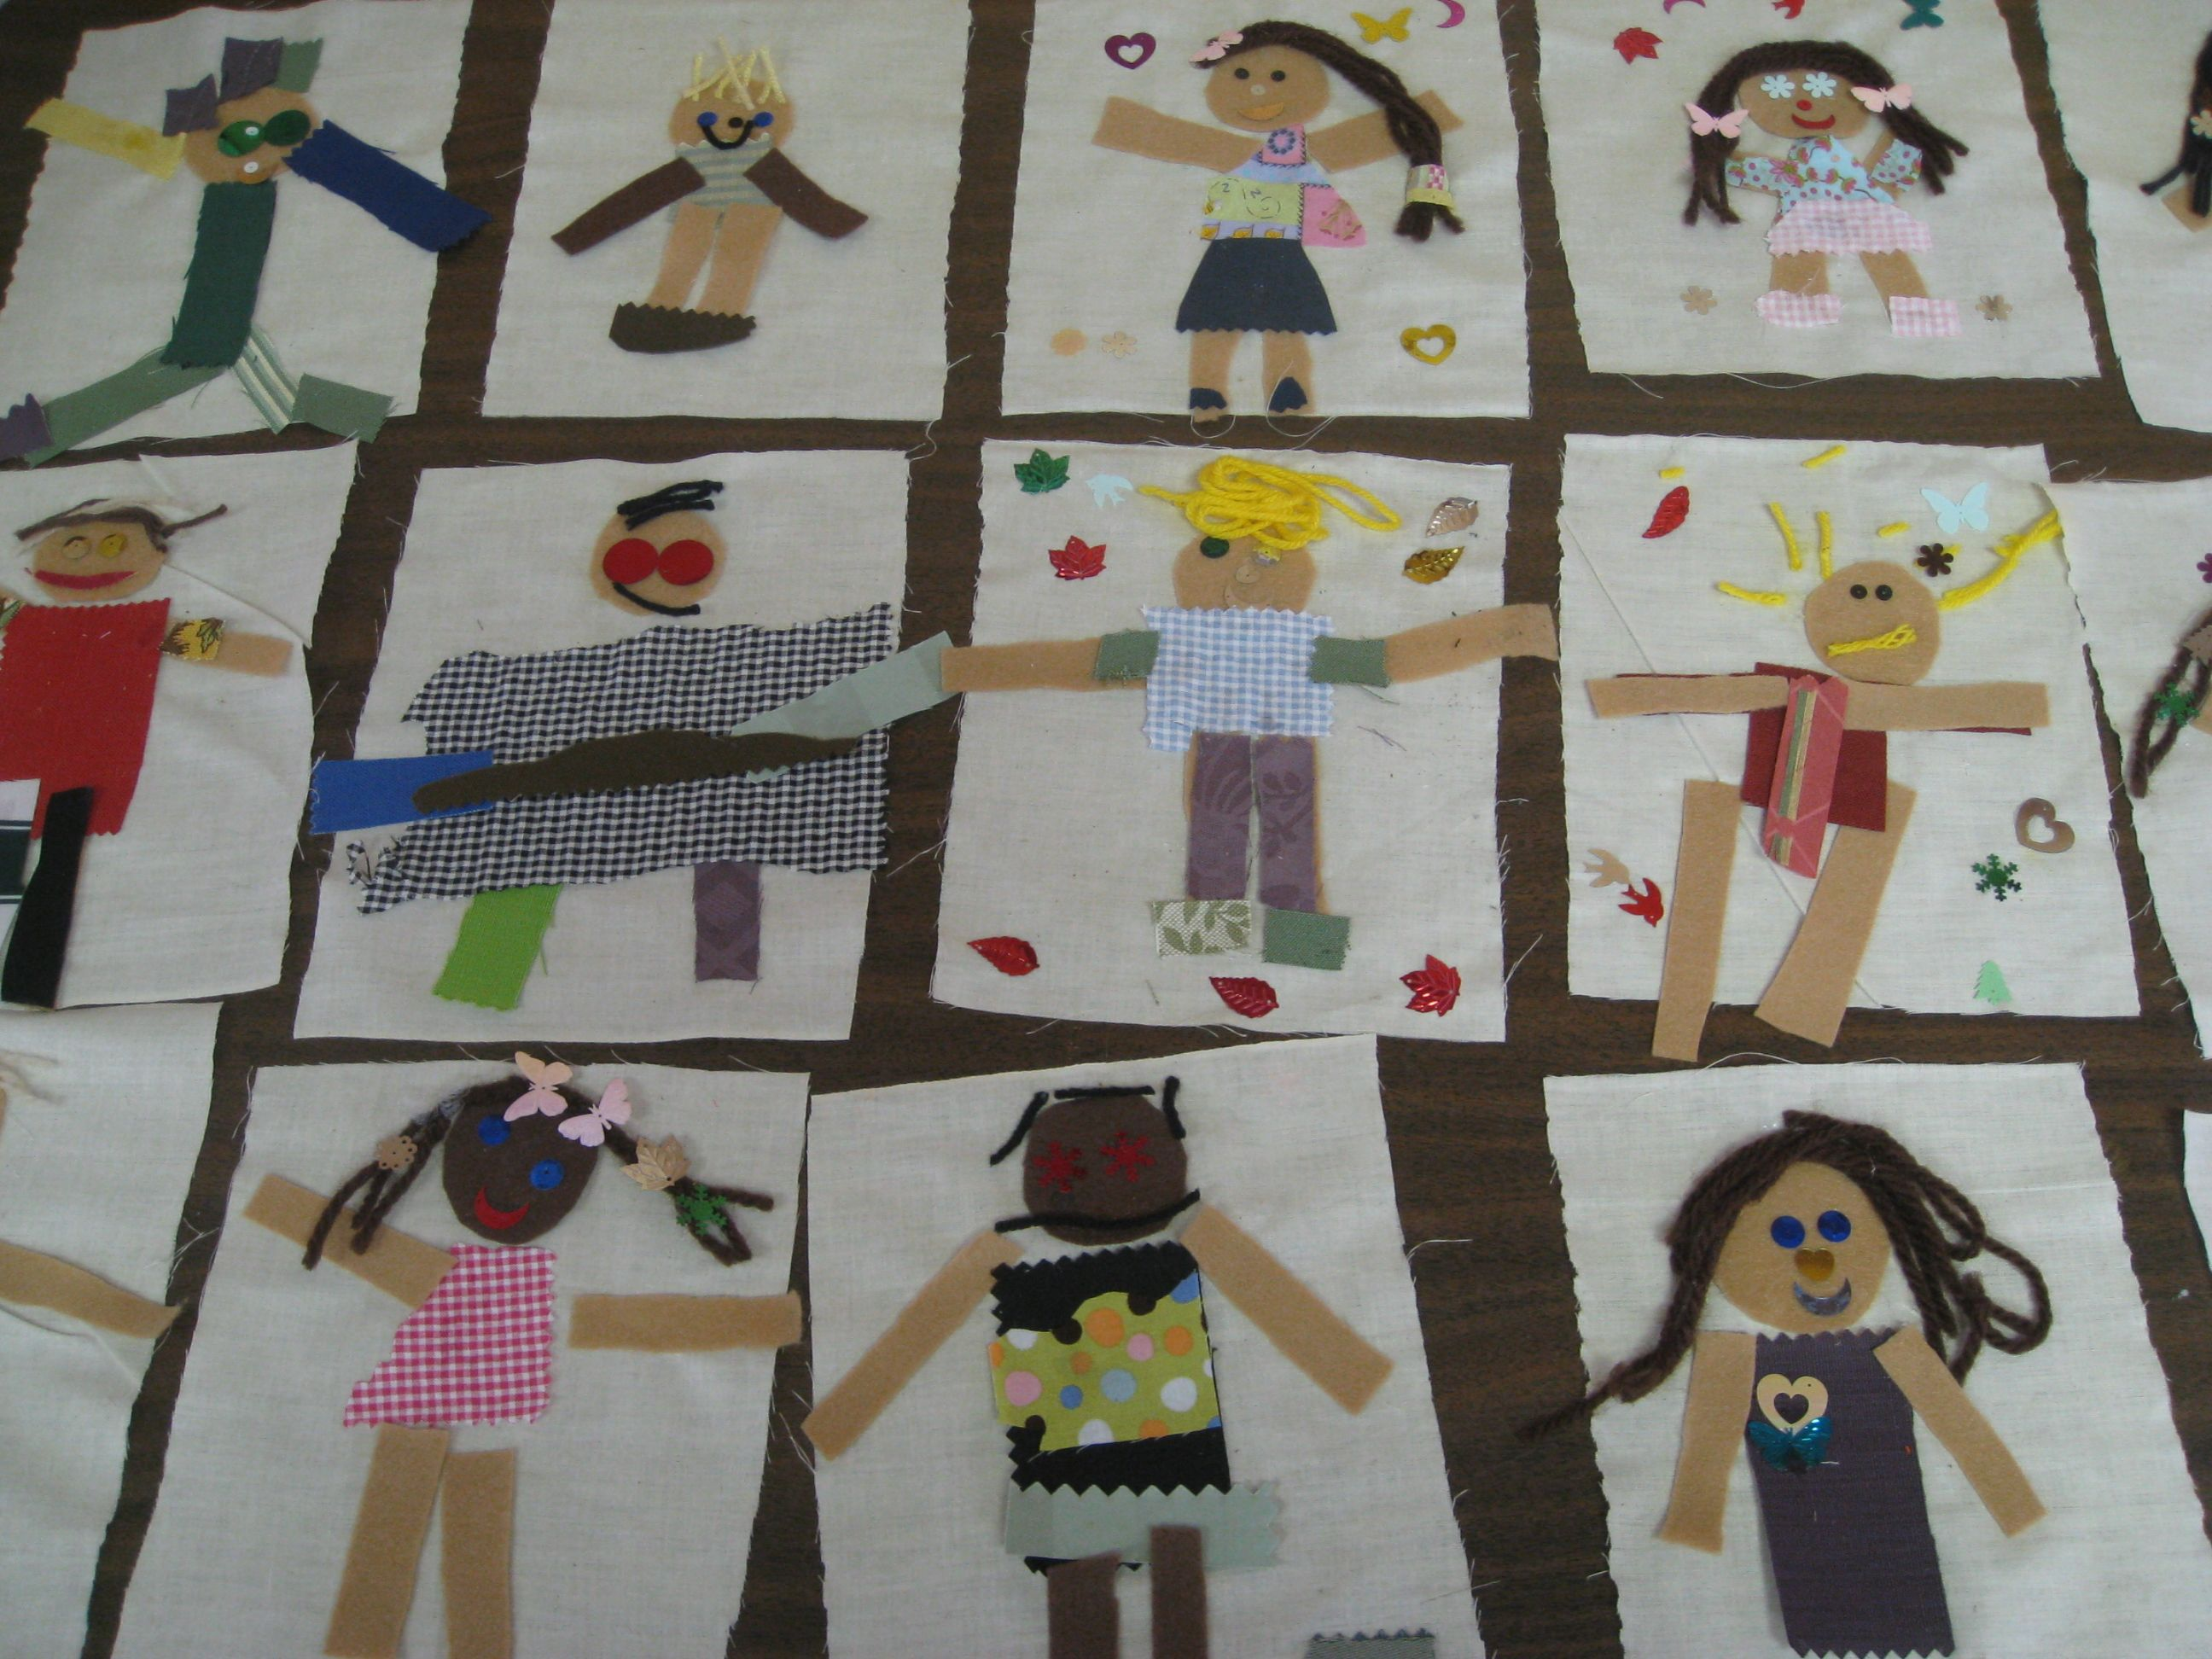 Fabric Craft Ideas For Kids Part - 37: Fabric Self Portraits By Kindergarteners. Kindergarten Art ProjectsKindergarten  ...